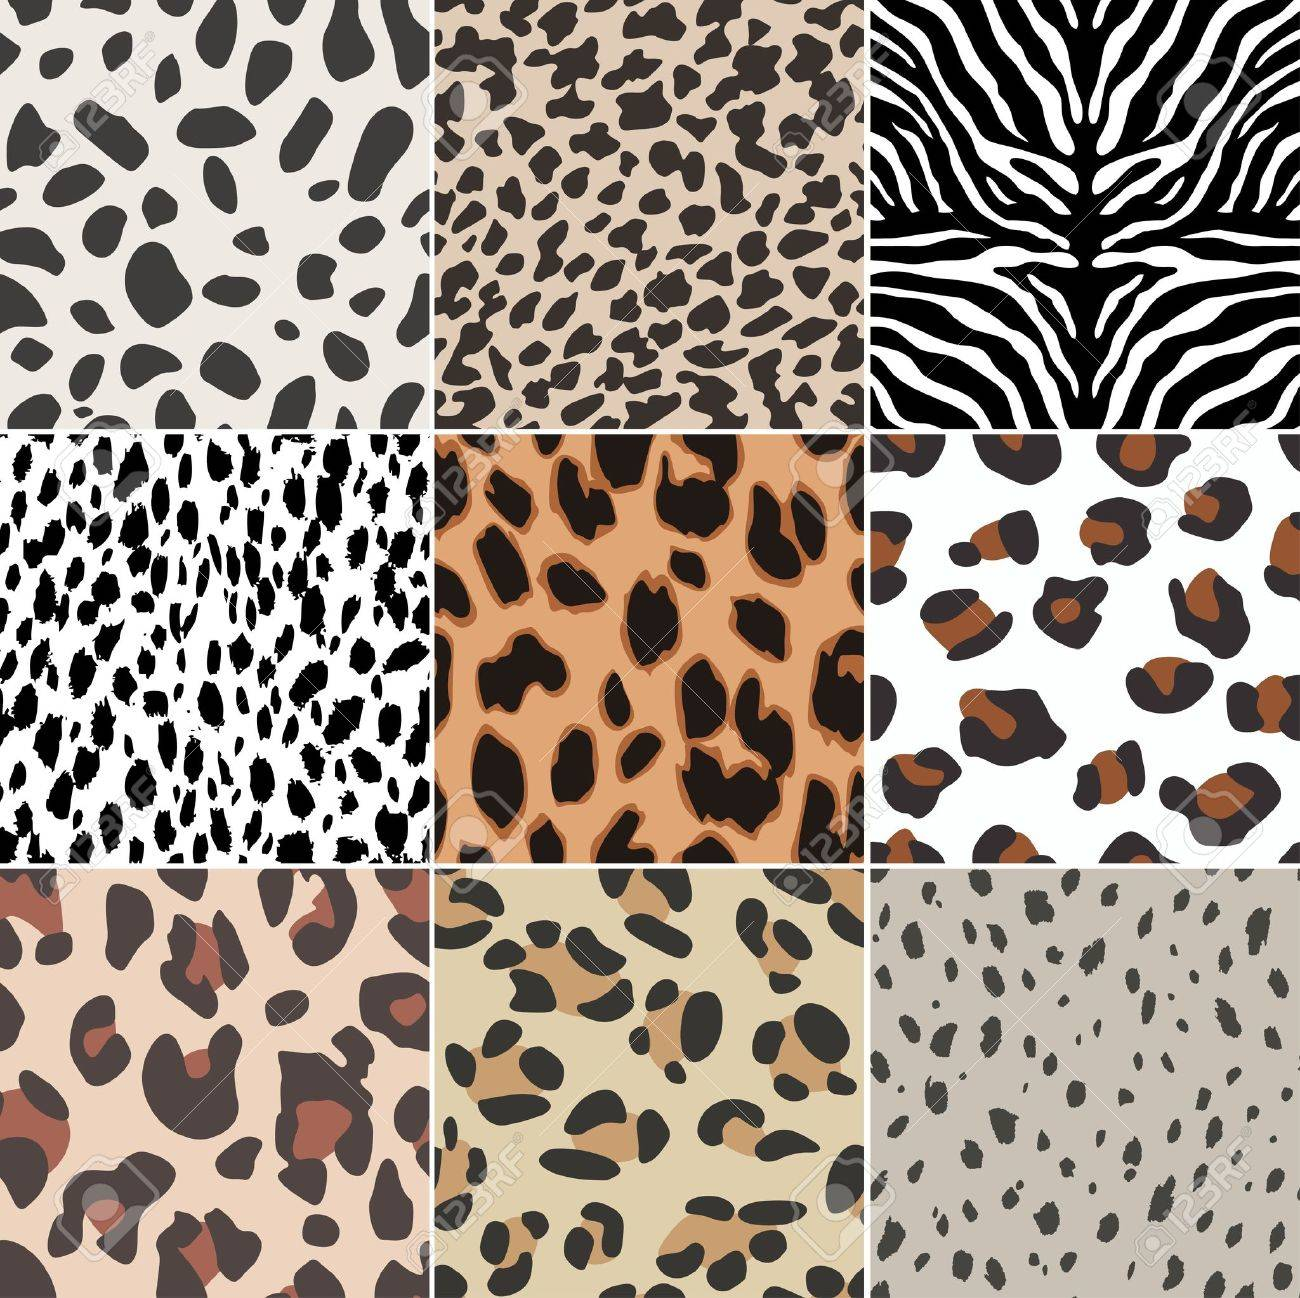 Animal Prints Animal Prints Images Stock Pictures Royalty Free Animal Prints